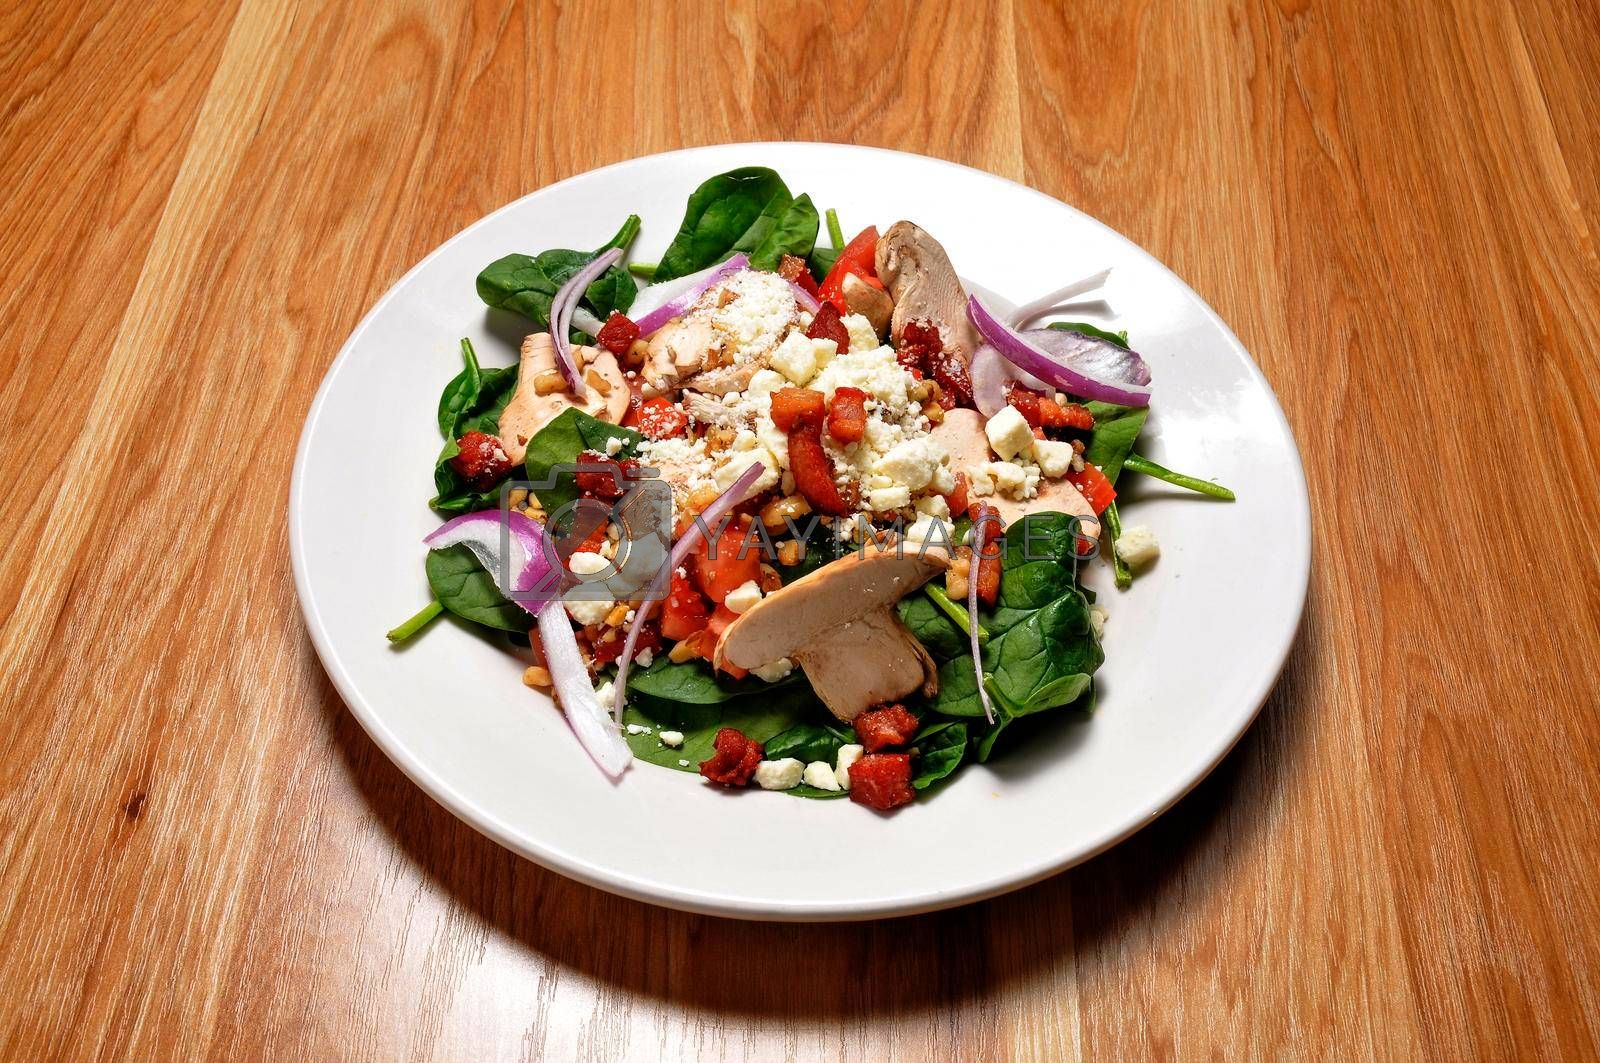 Very colorful tossed green spinach garden salad.